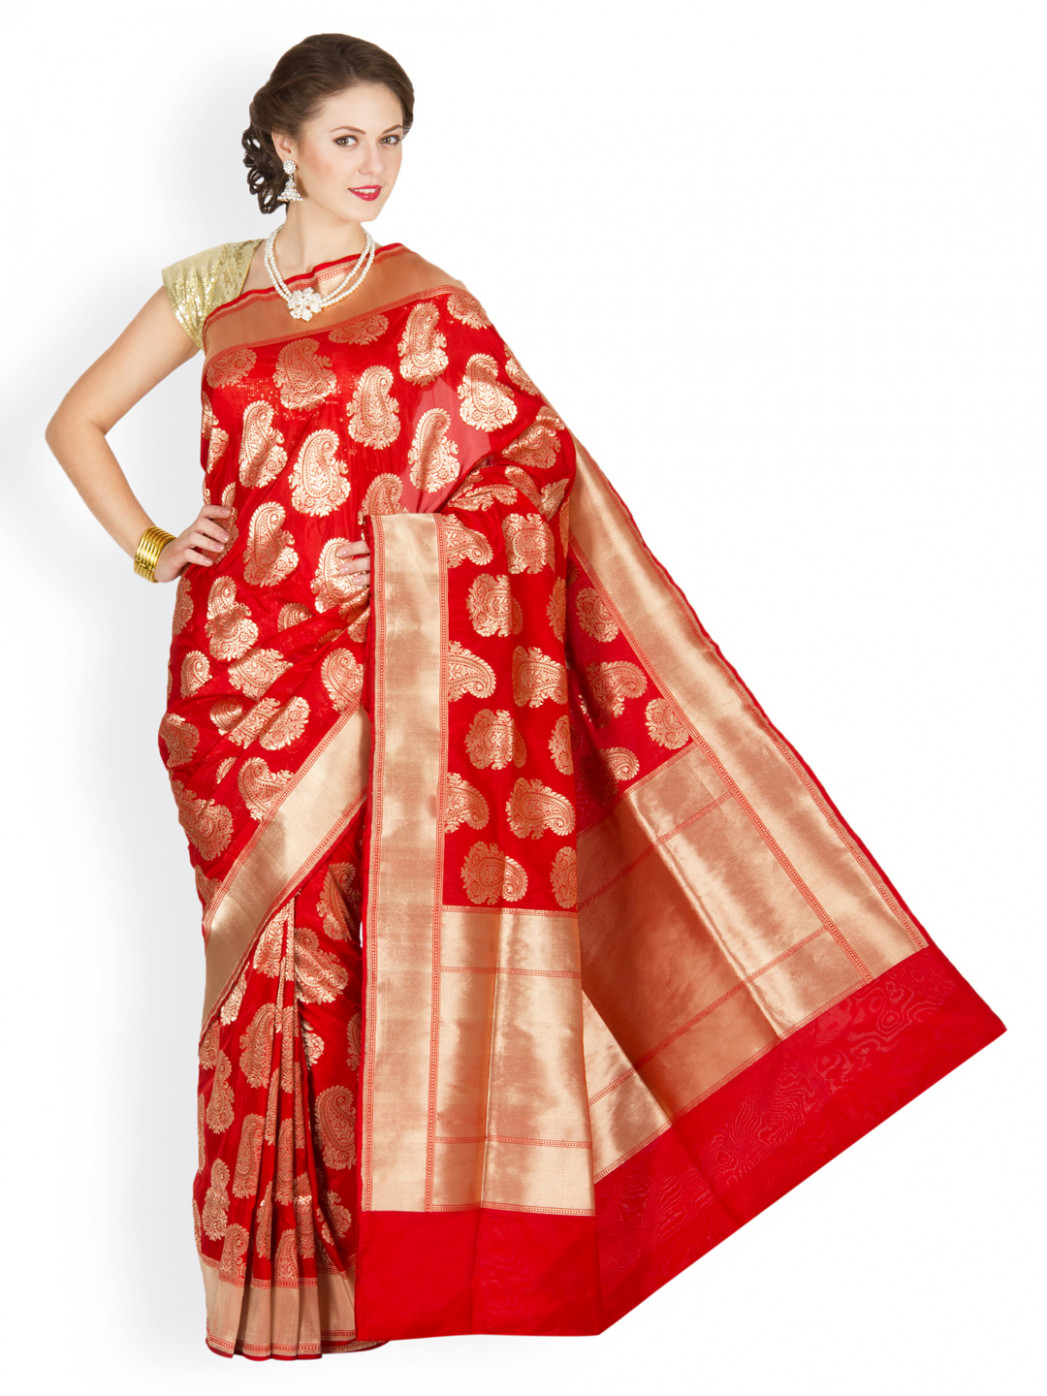 Banarasi Sarees – A Must Have In The Wedding Trousseau